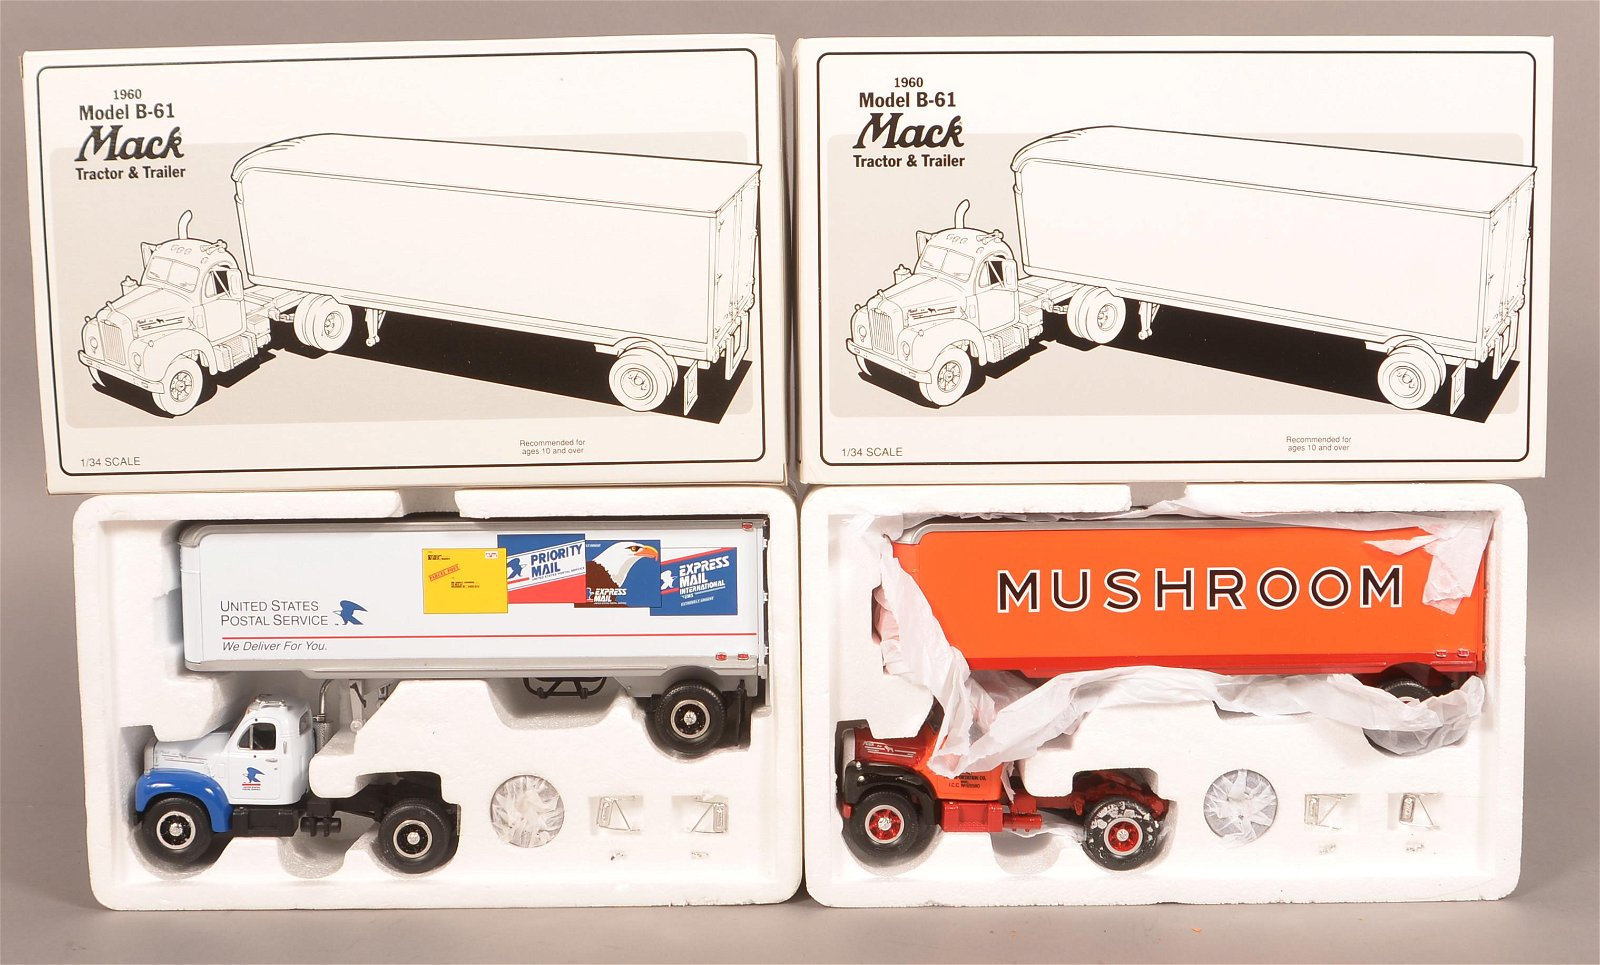 2 First Gear 1960 Model B-61 Mack Tractor and Trailers.